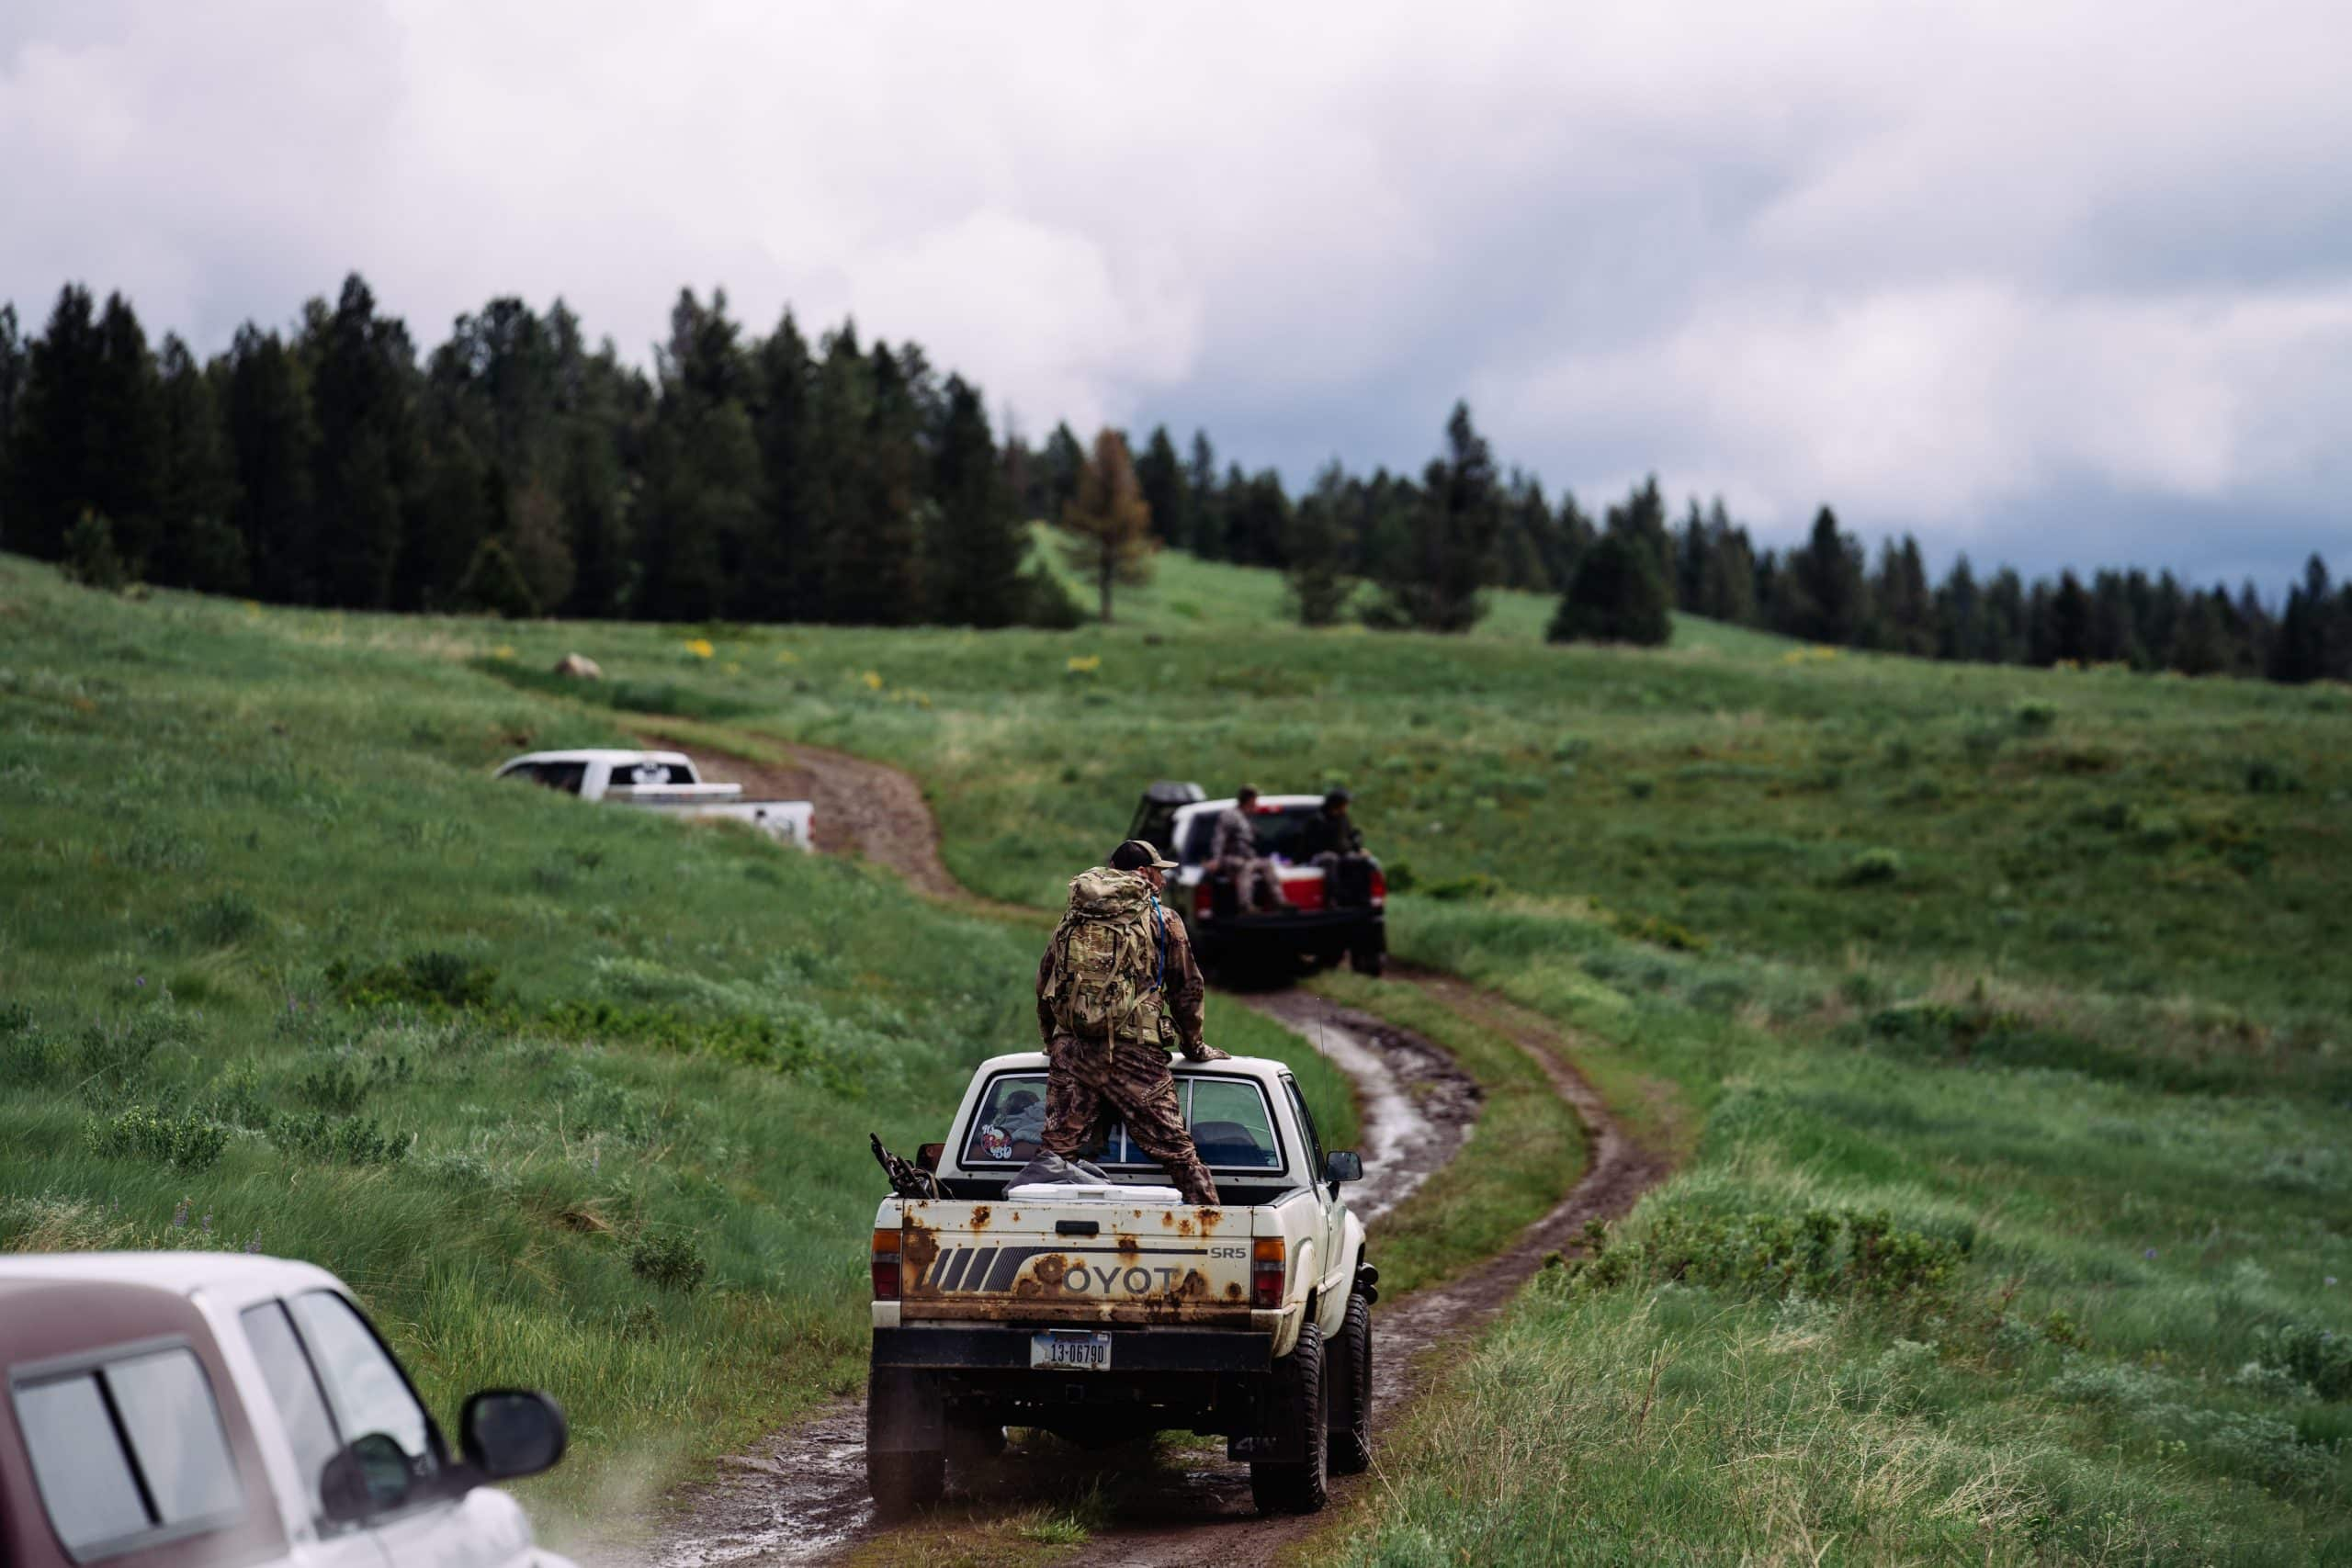 The muddy road leading deeper into the Blackfoot-Clearwater Game Range in Montana.